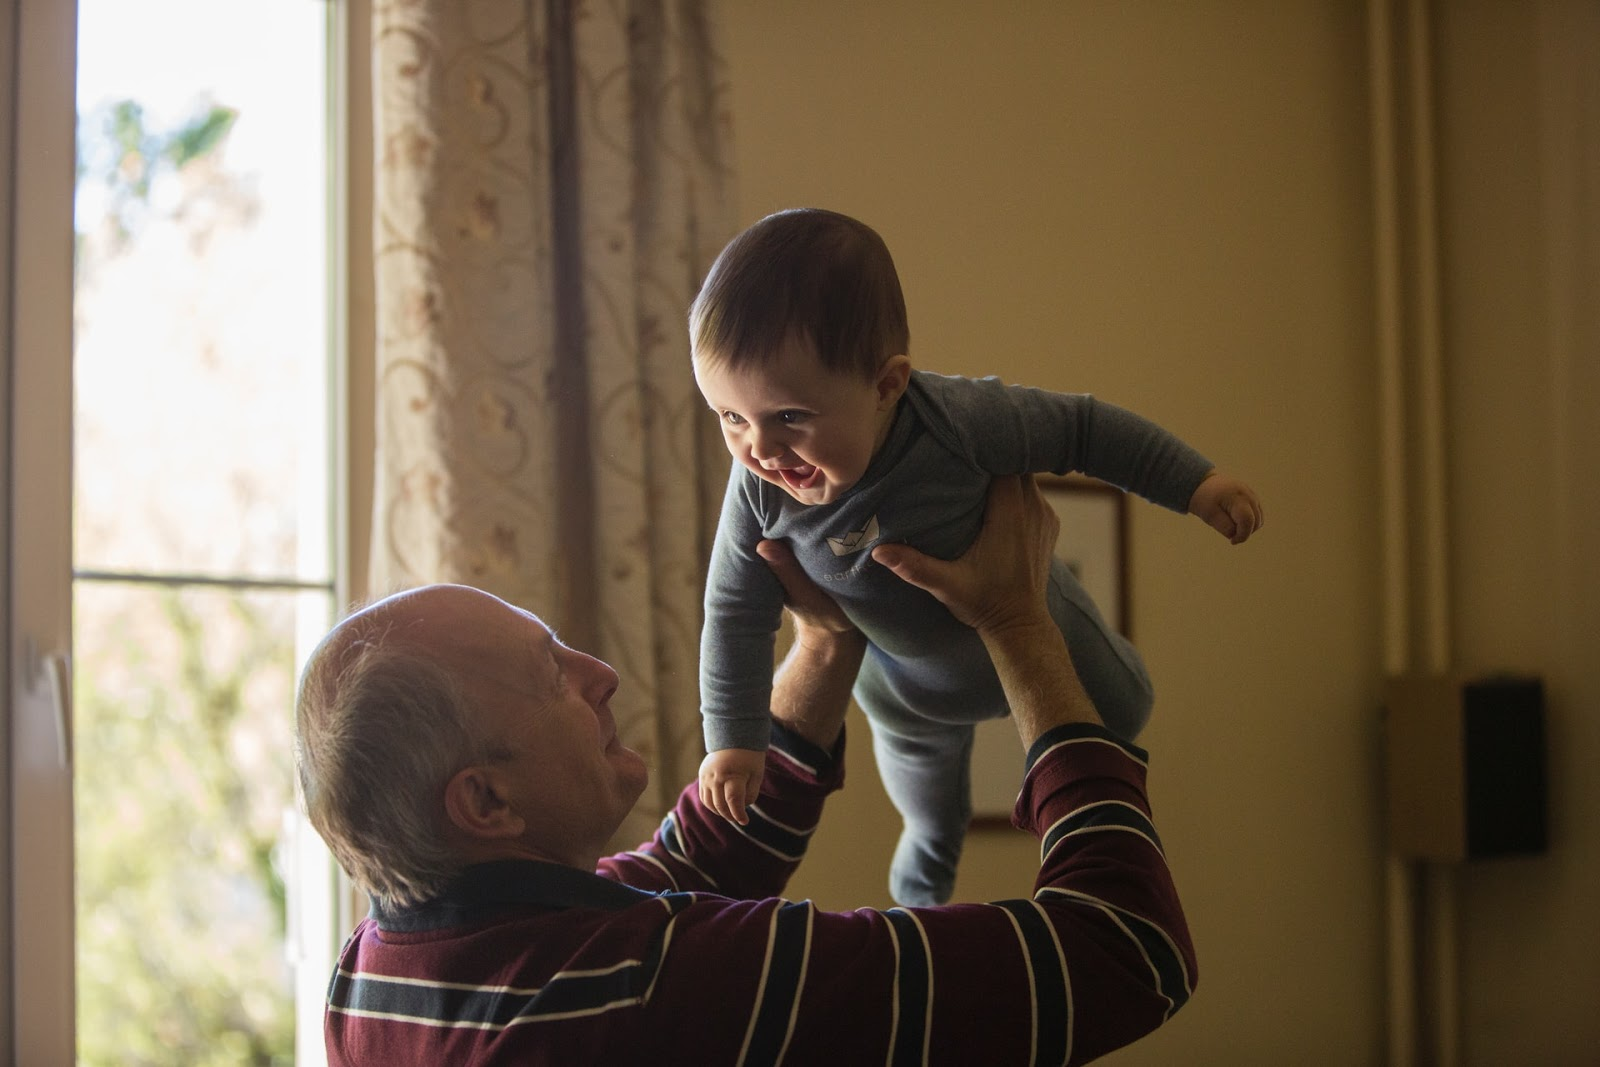 old man lifting a smiling baby into the air